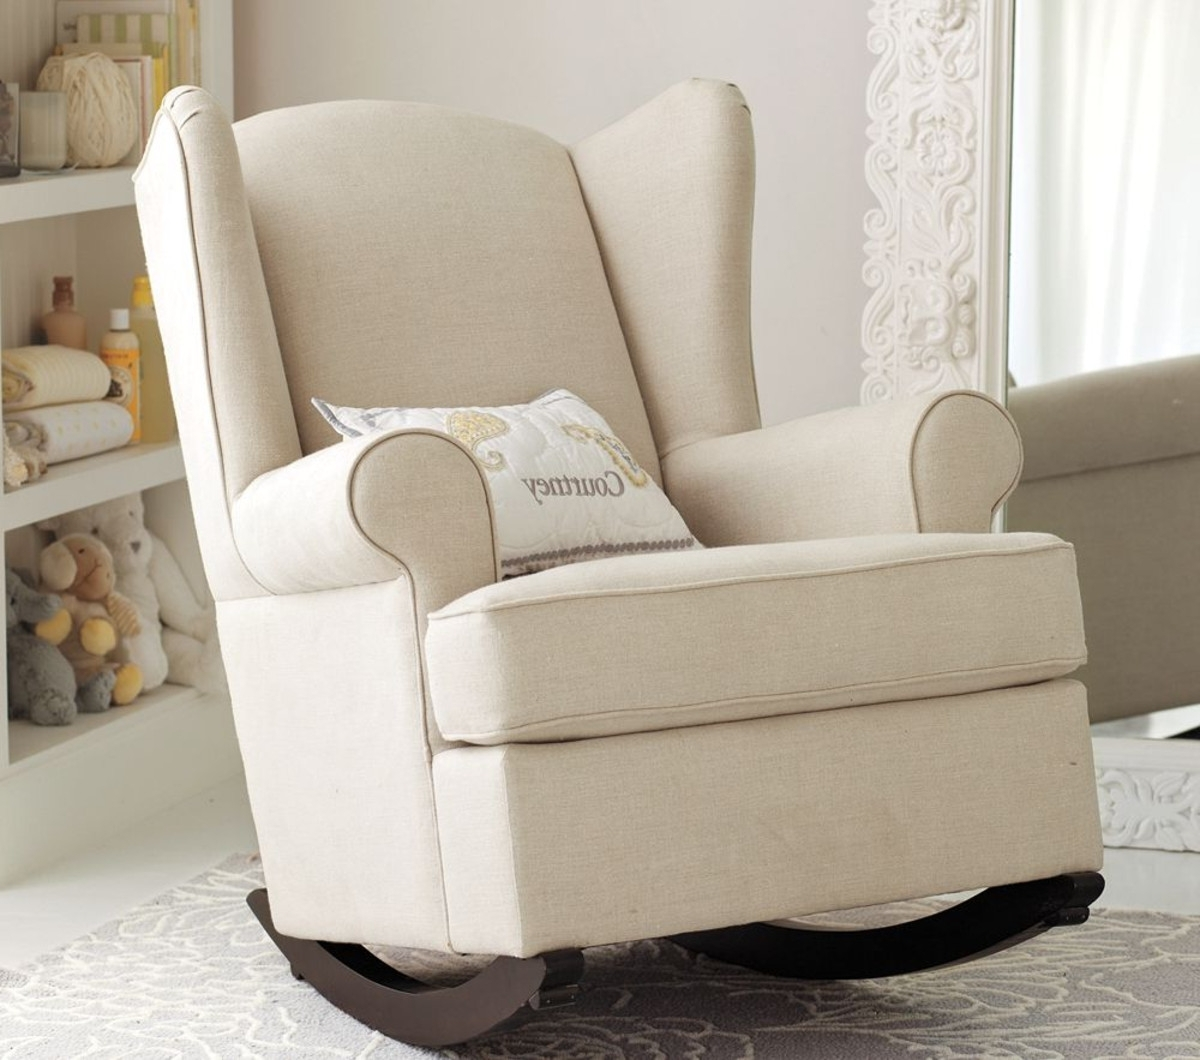 Rocking Chairs For Baby Room Inside Most Popular Modern Rocking Chairs Nursery — Wilson Home Ideas : Healthy (View 4 of 20)